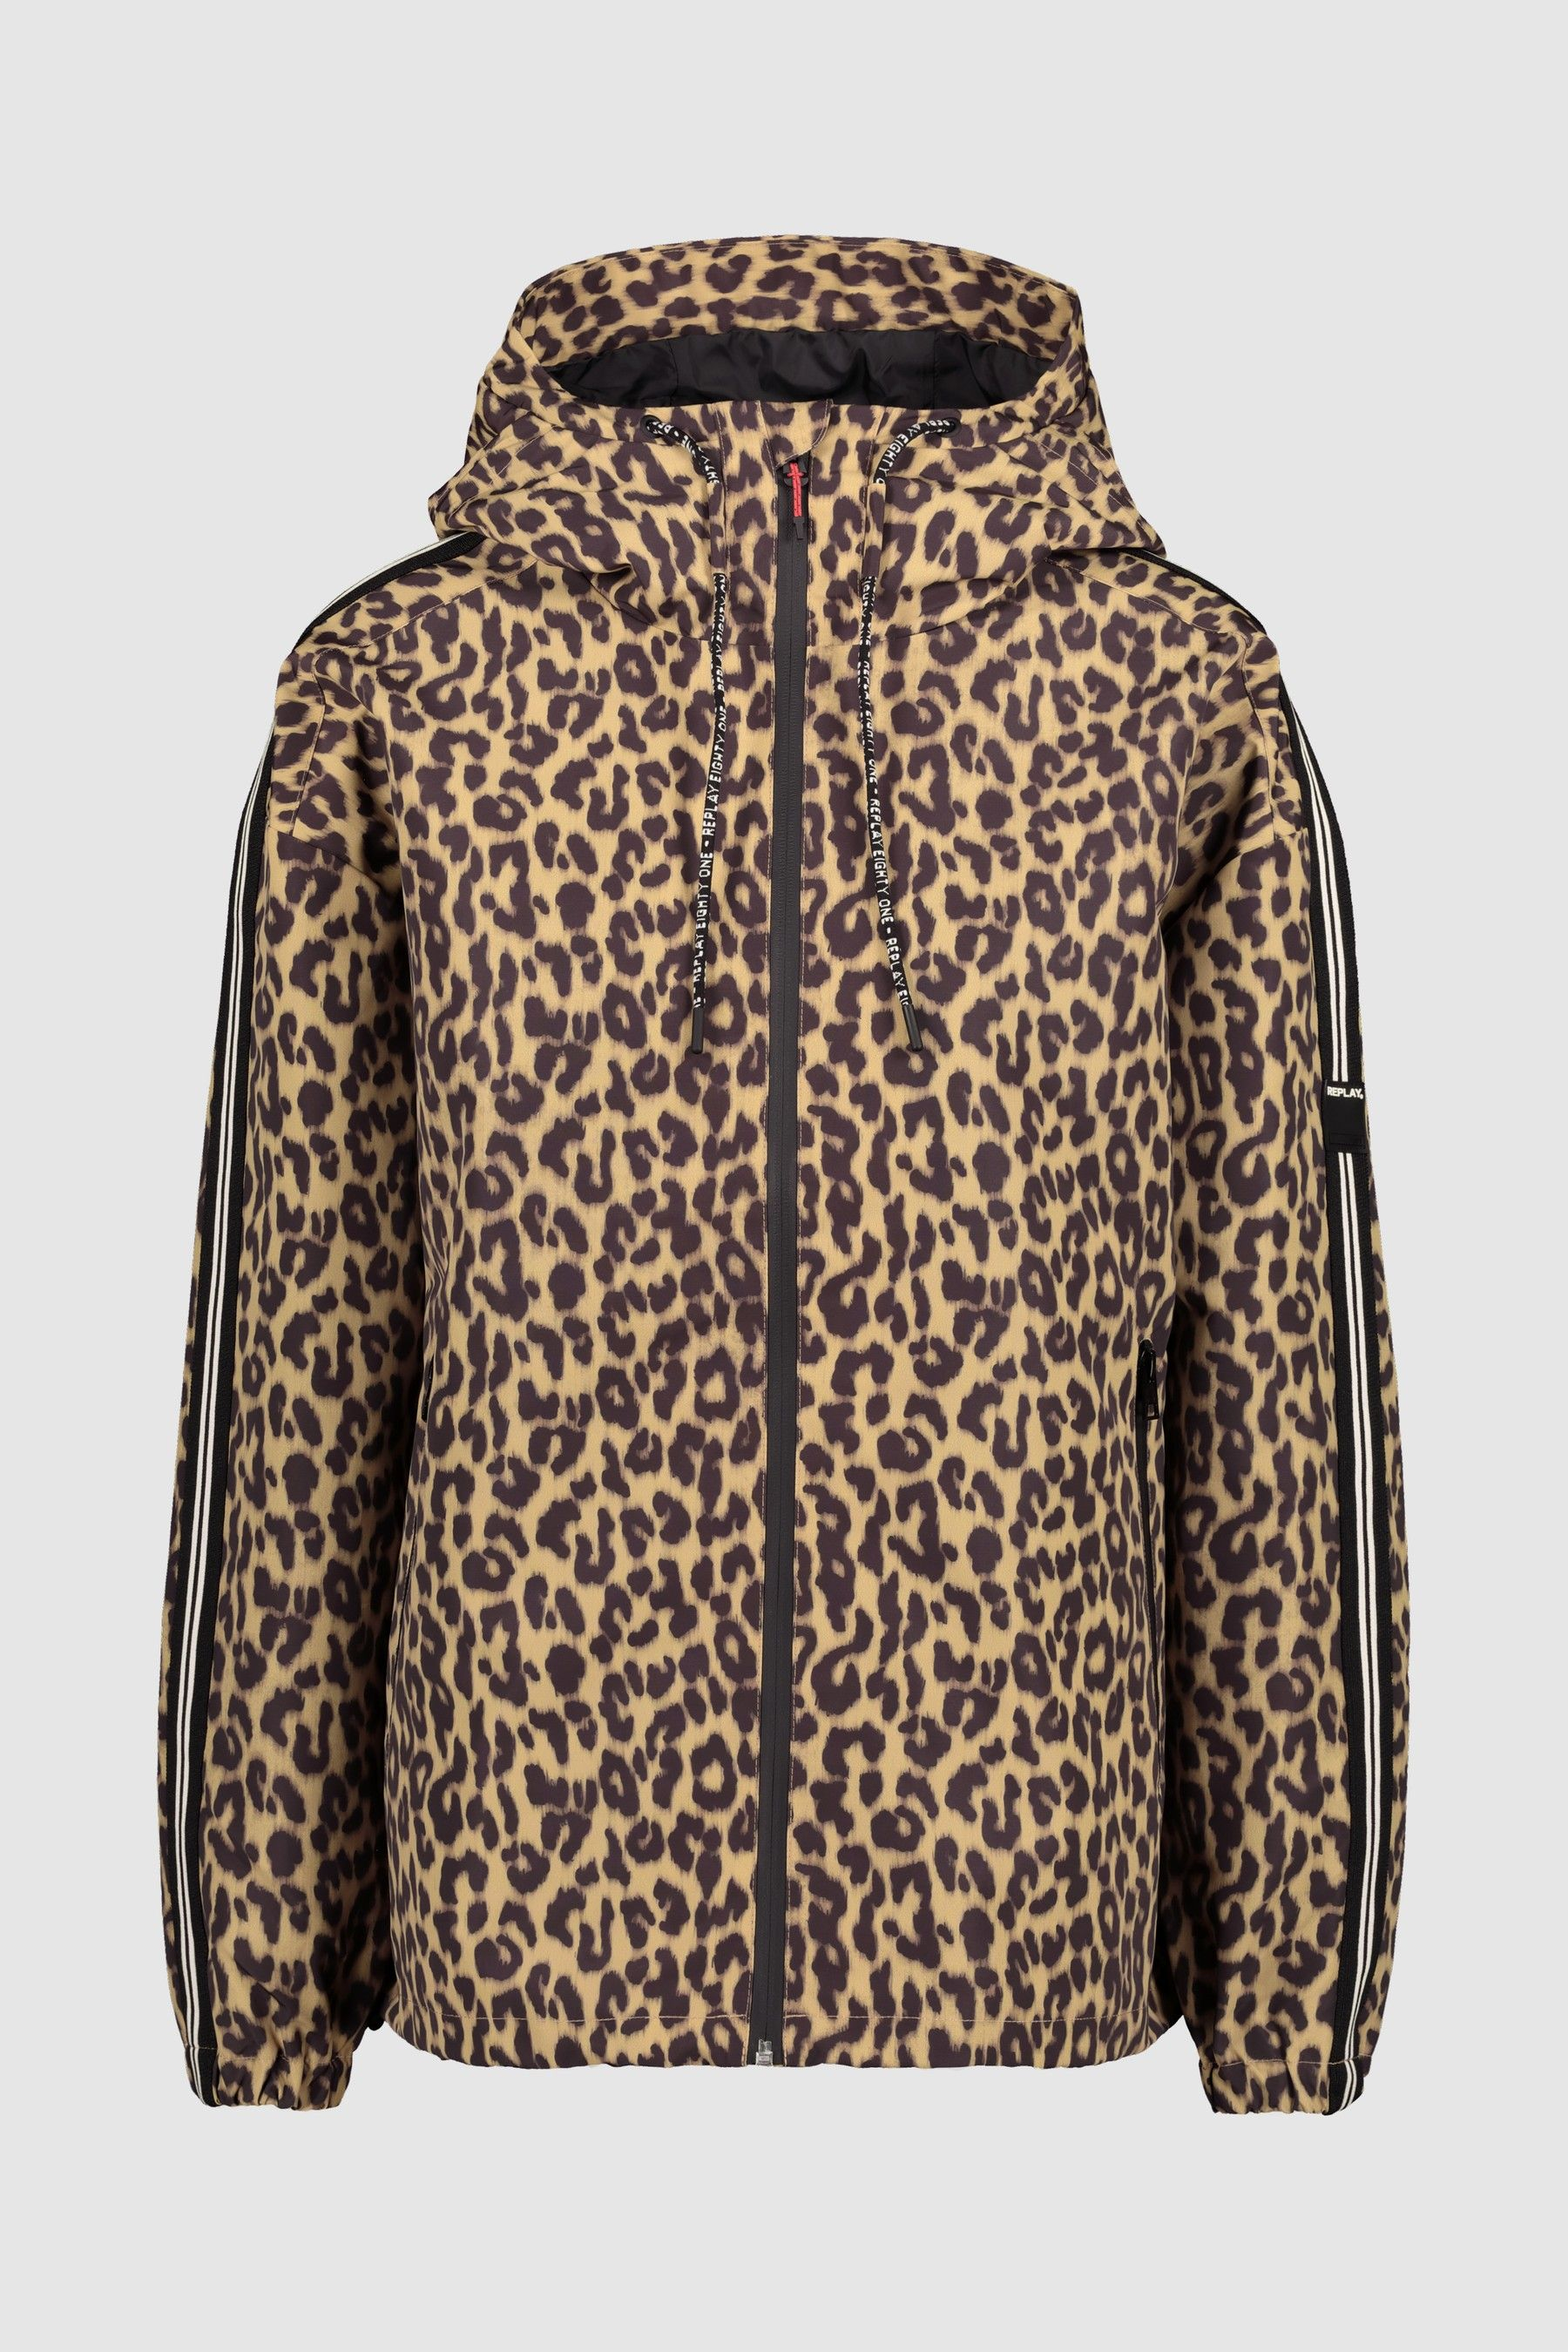 Womens Replay Leopard Print Jacket Blue   Products in 2019